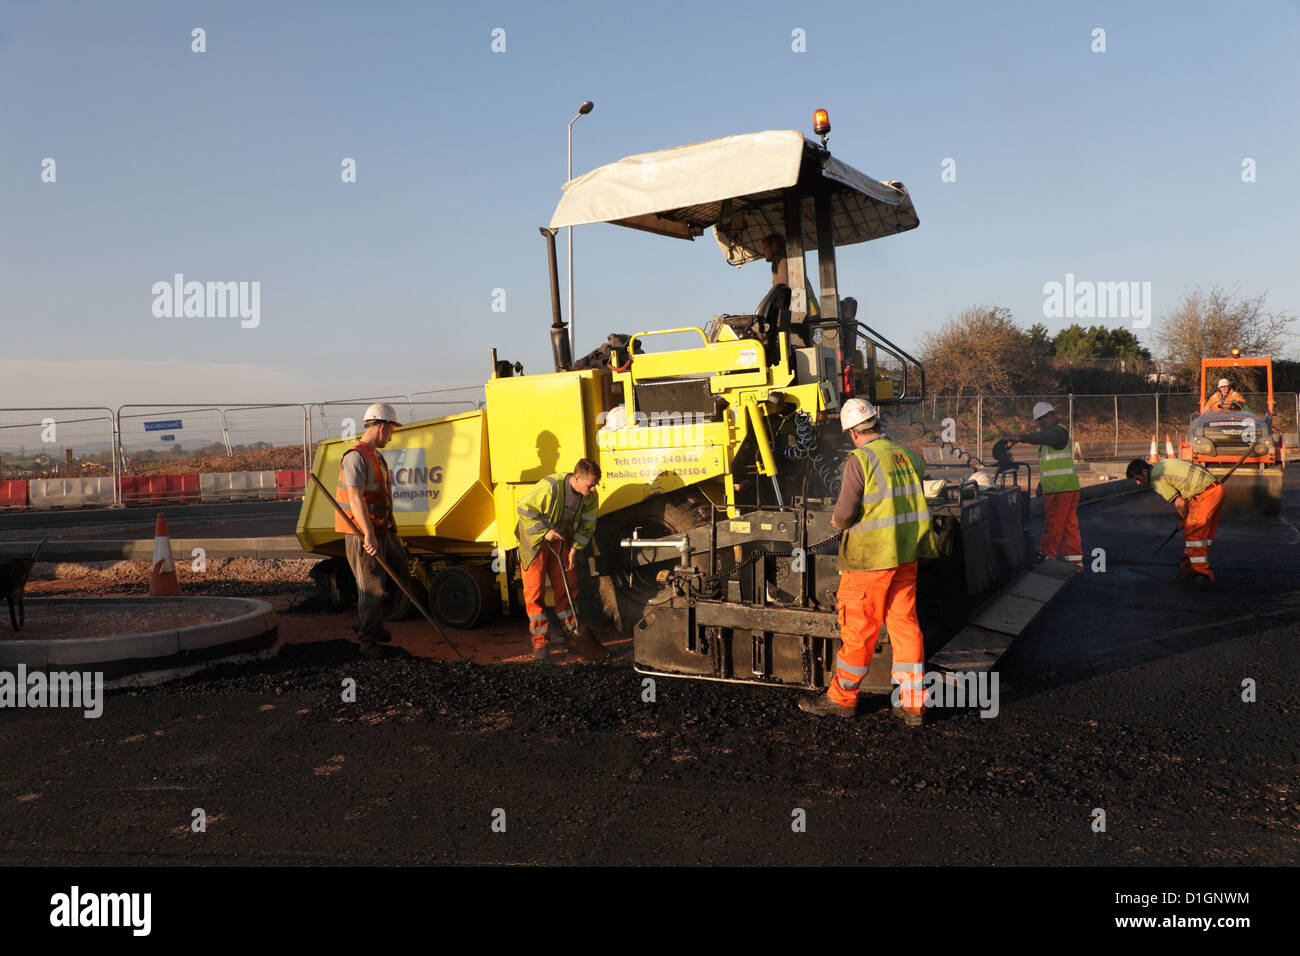 A Civil Engineering contractor highway maintenance gang laying Stock Photo Royalty Free Image